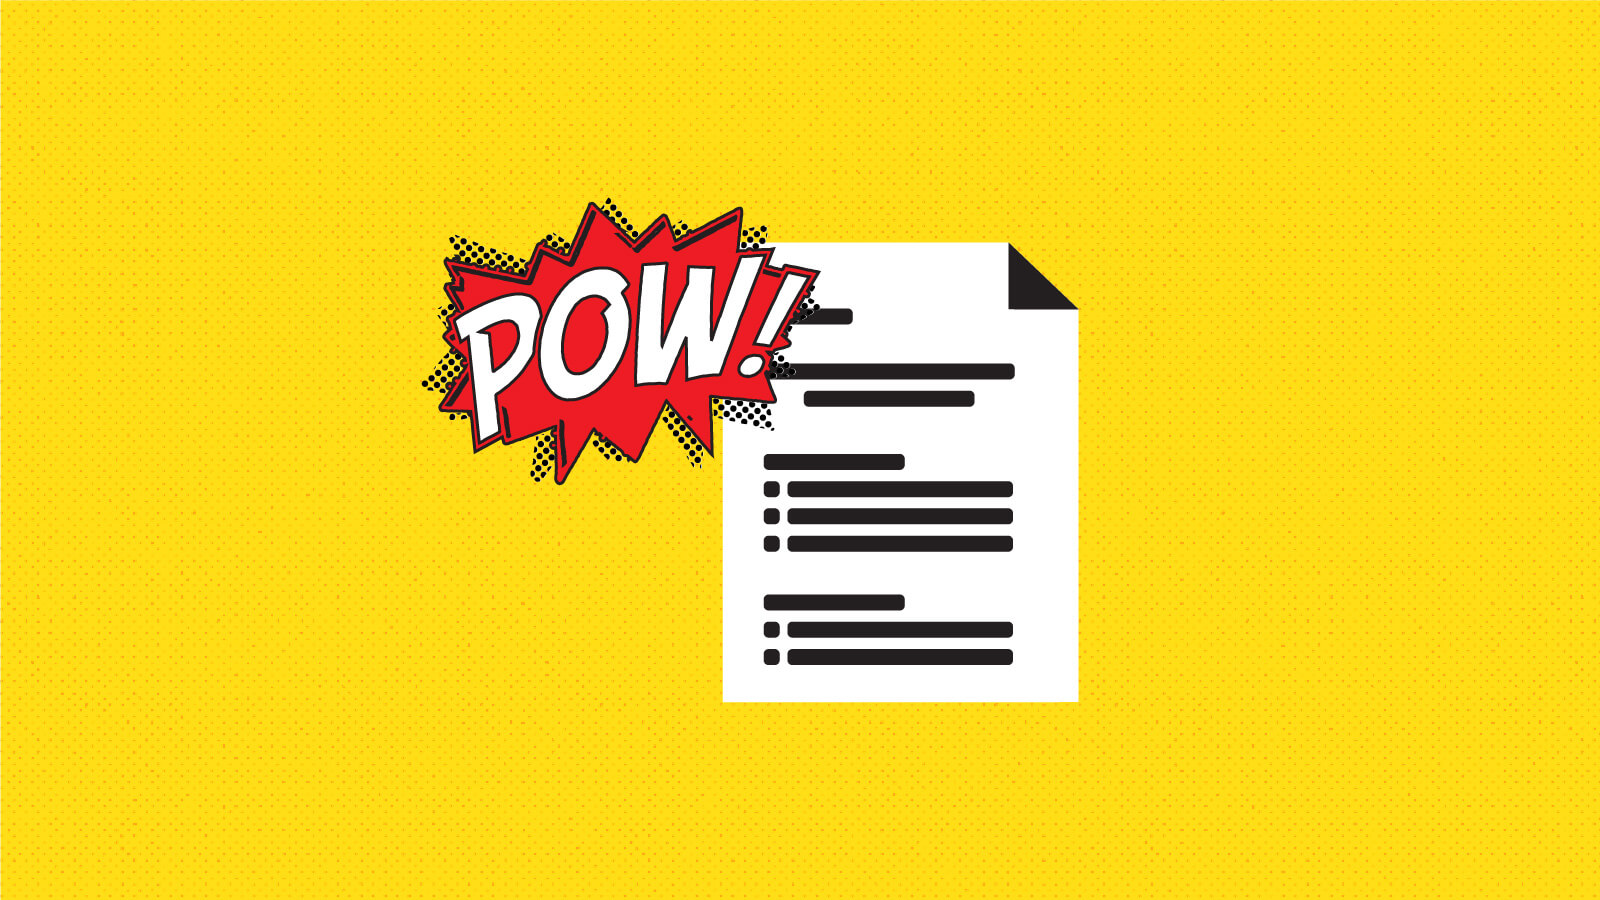 5 powerful verbs to pump up your resume topresume